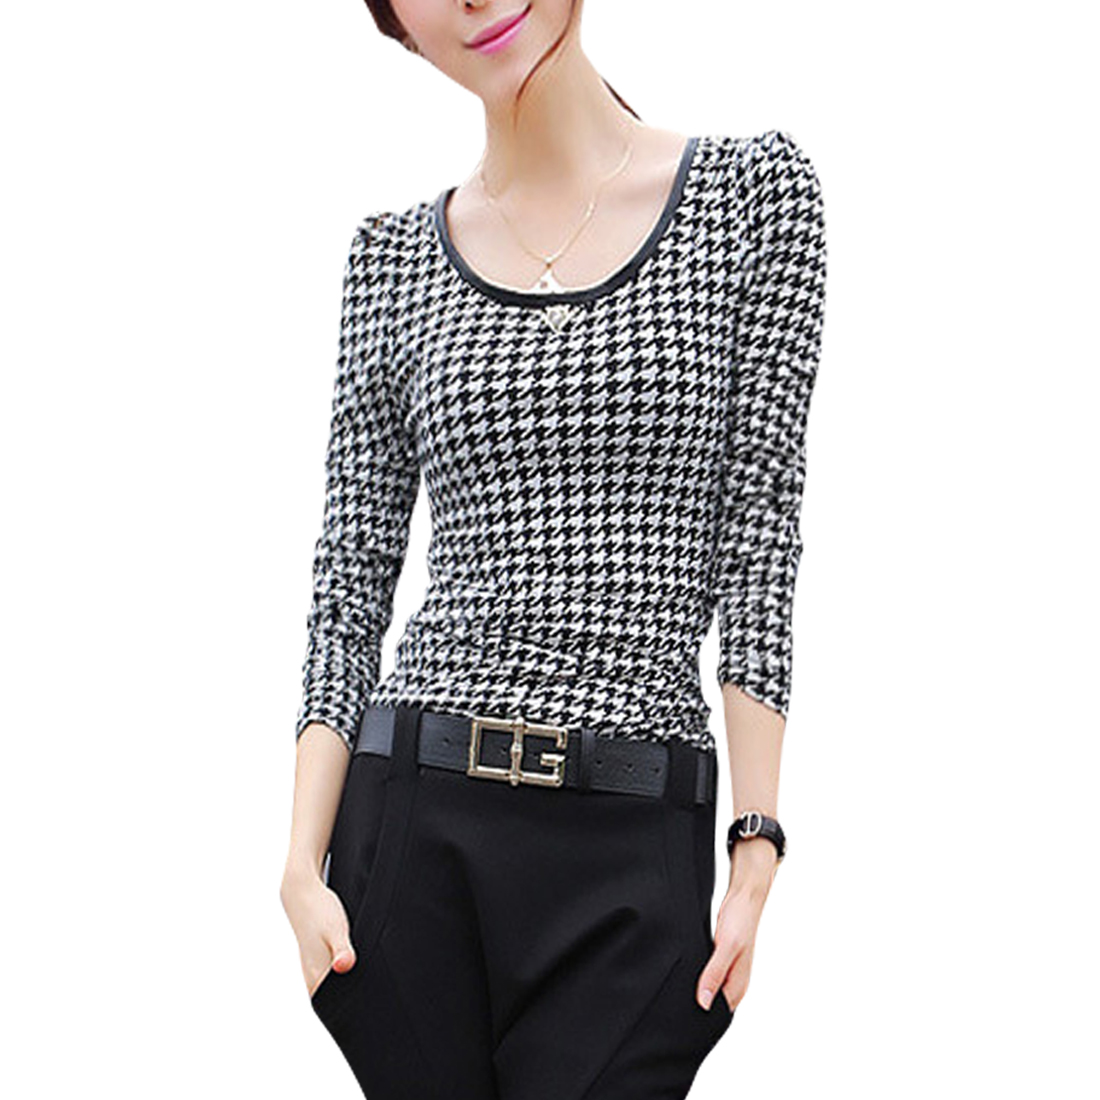 Women Scoop Neck Lace Splicing Black White Houndstooth Tee Shirt XS